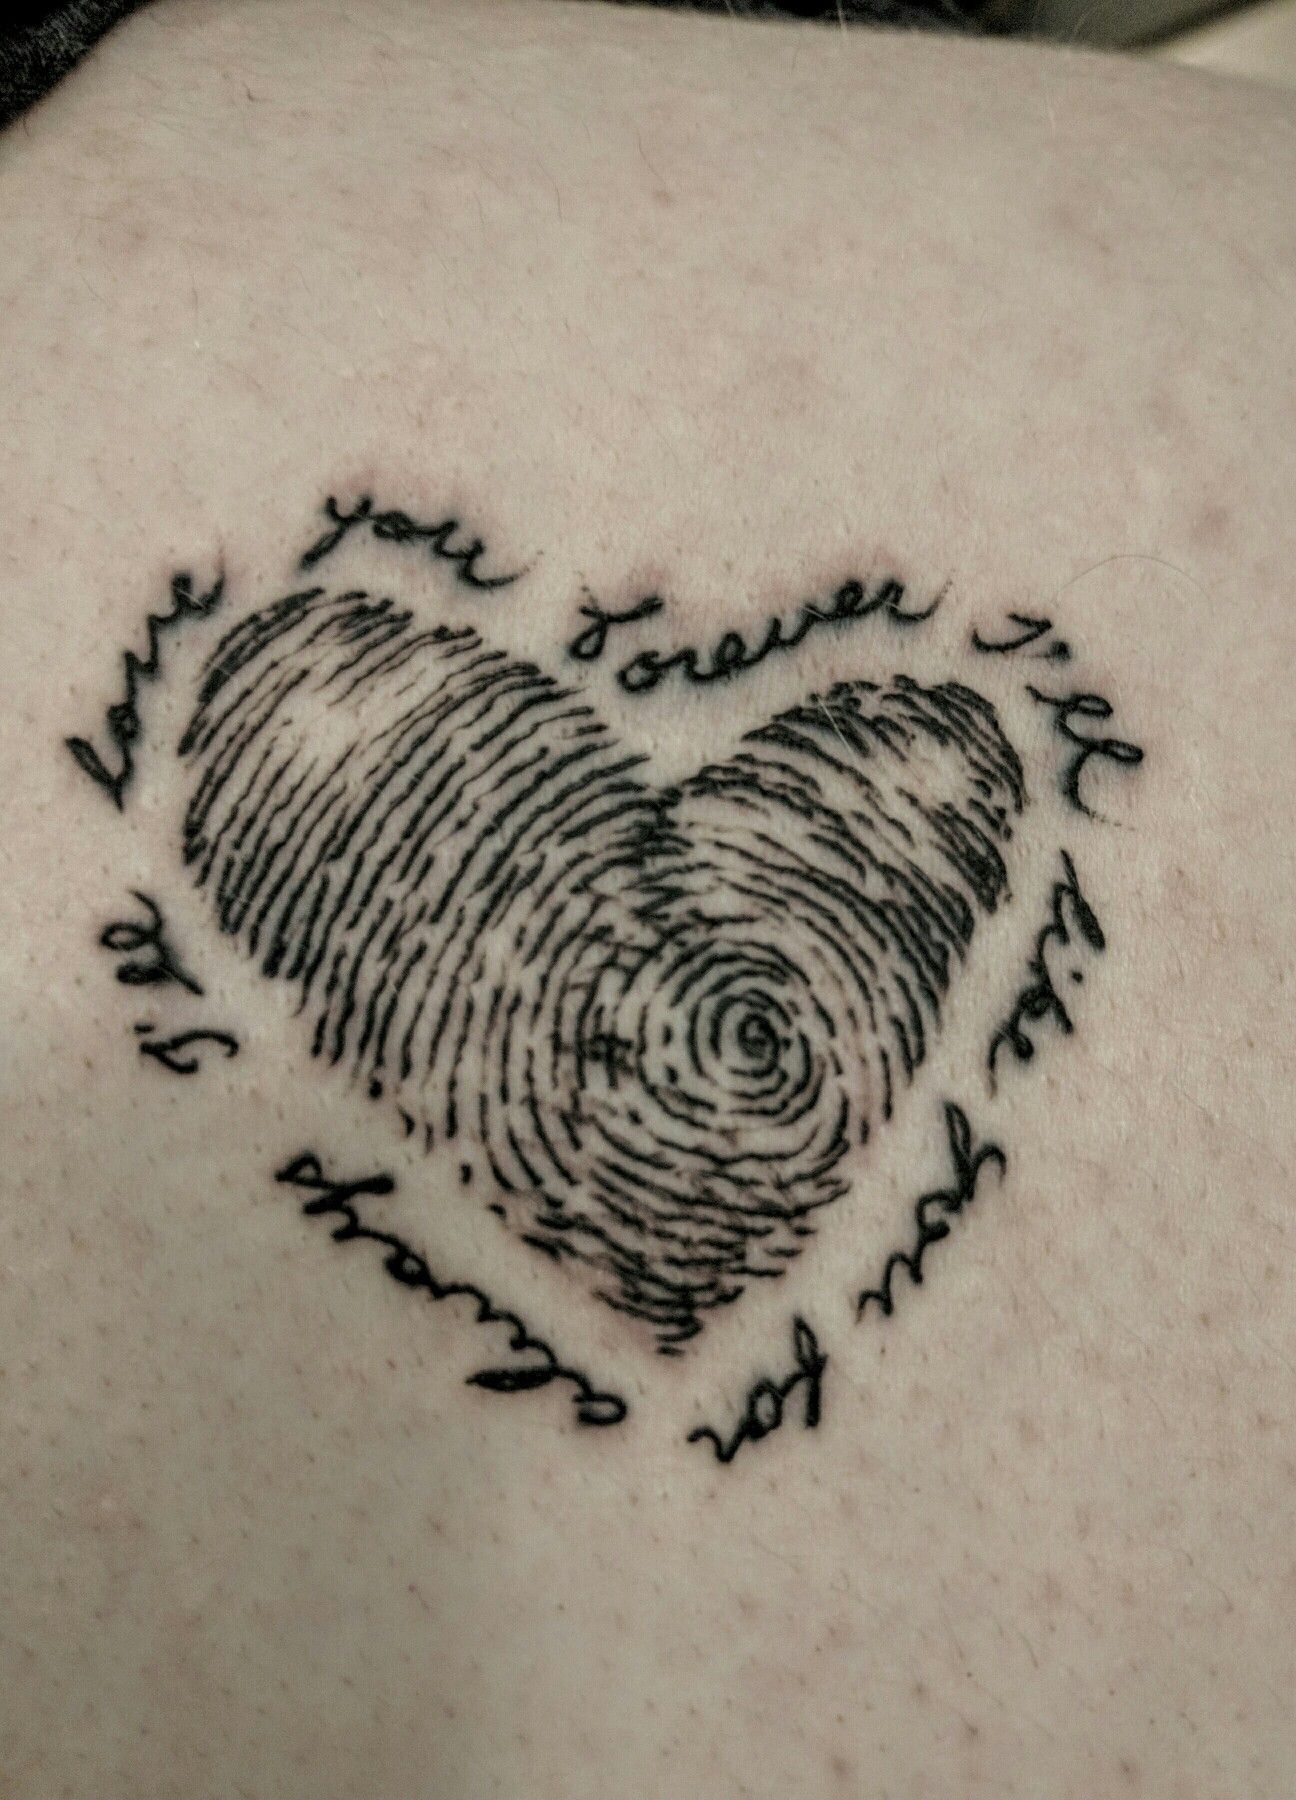 Iull love you forever iull like you for always tattoos pinterest